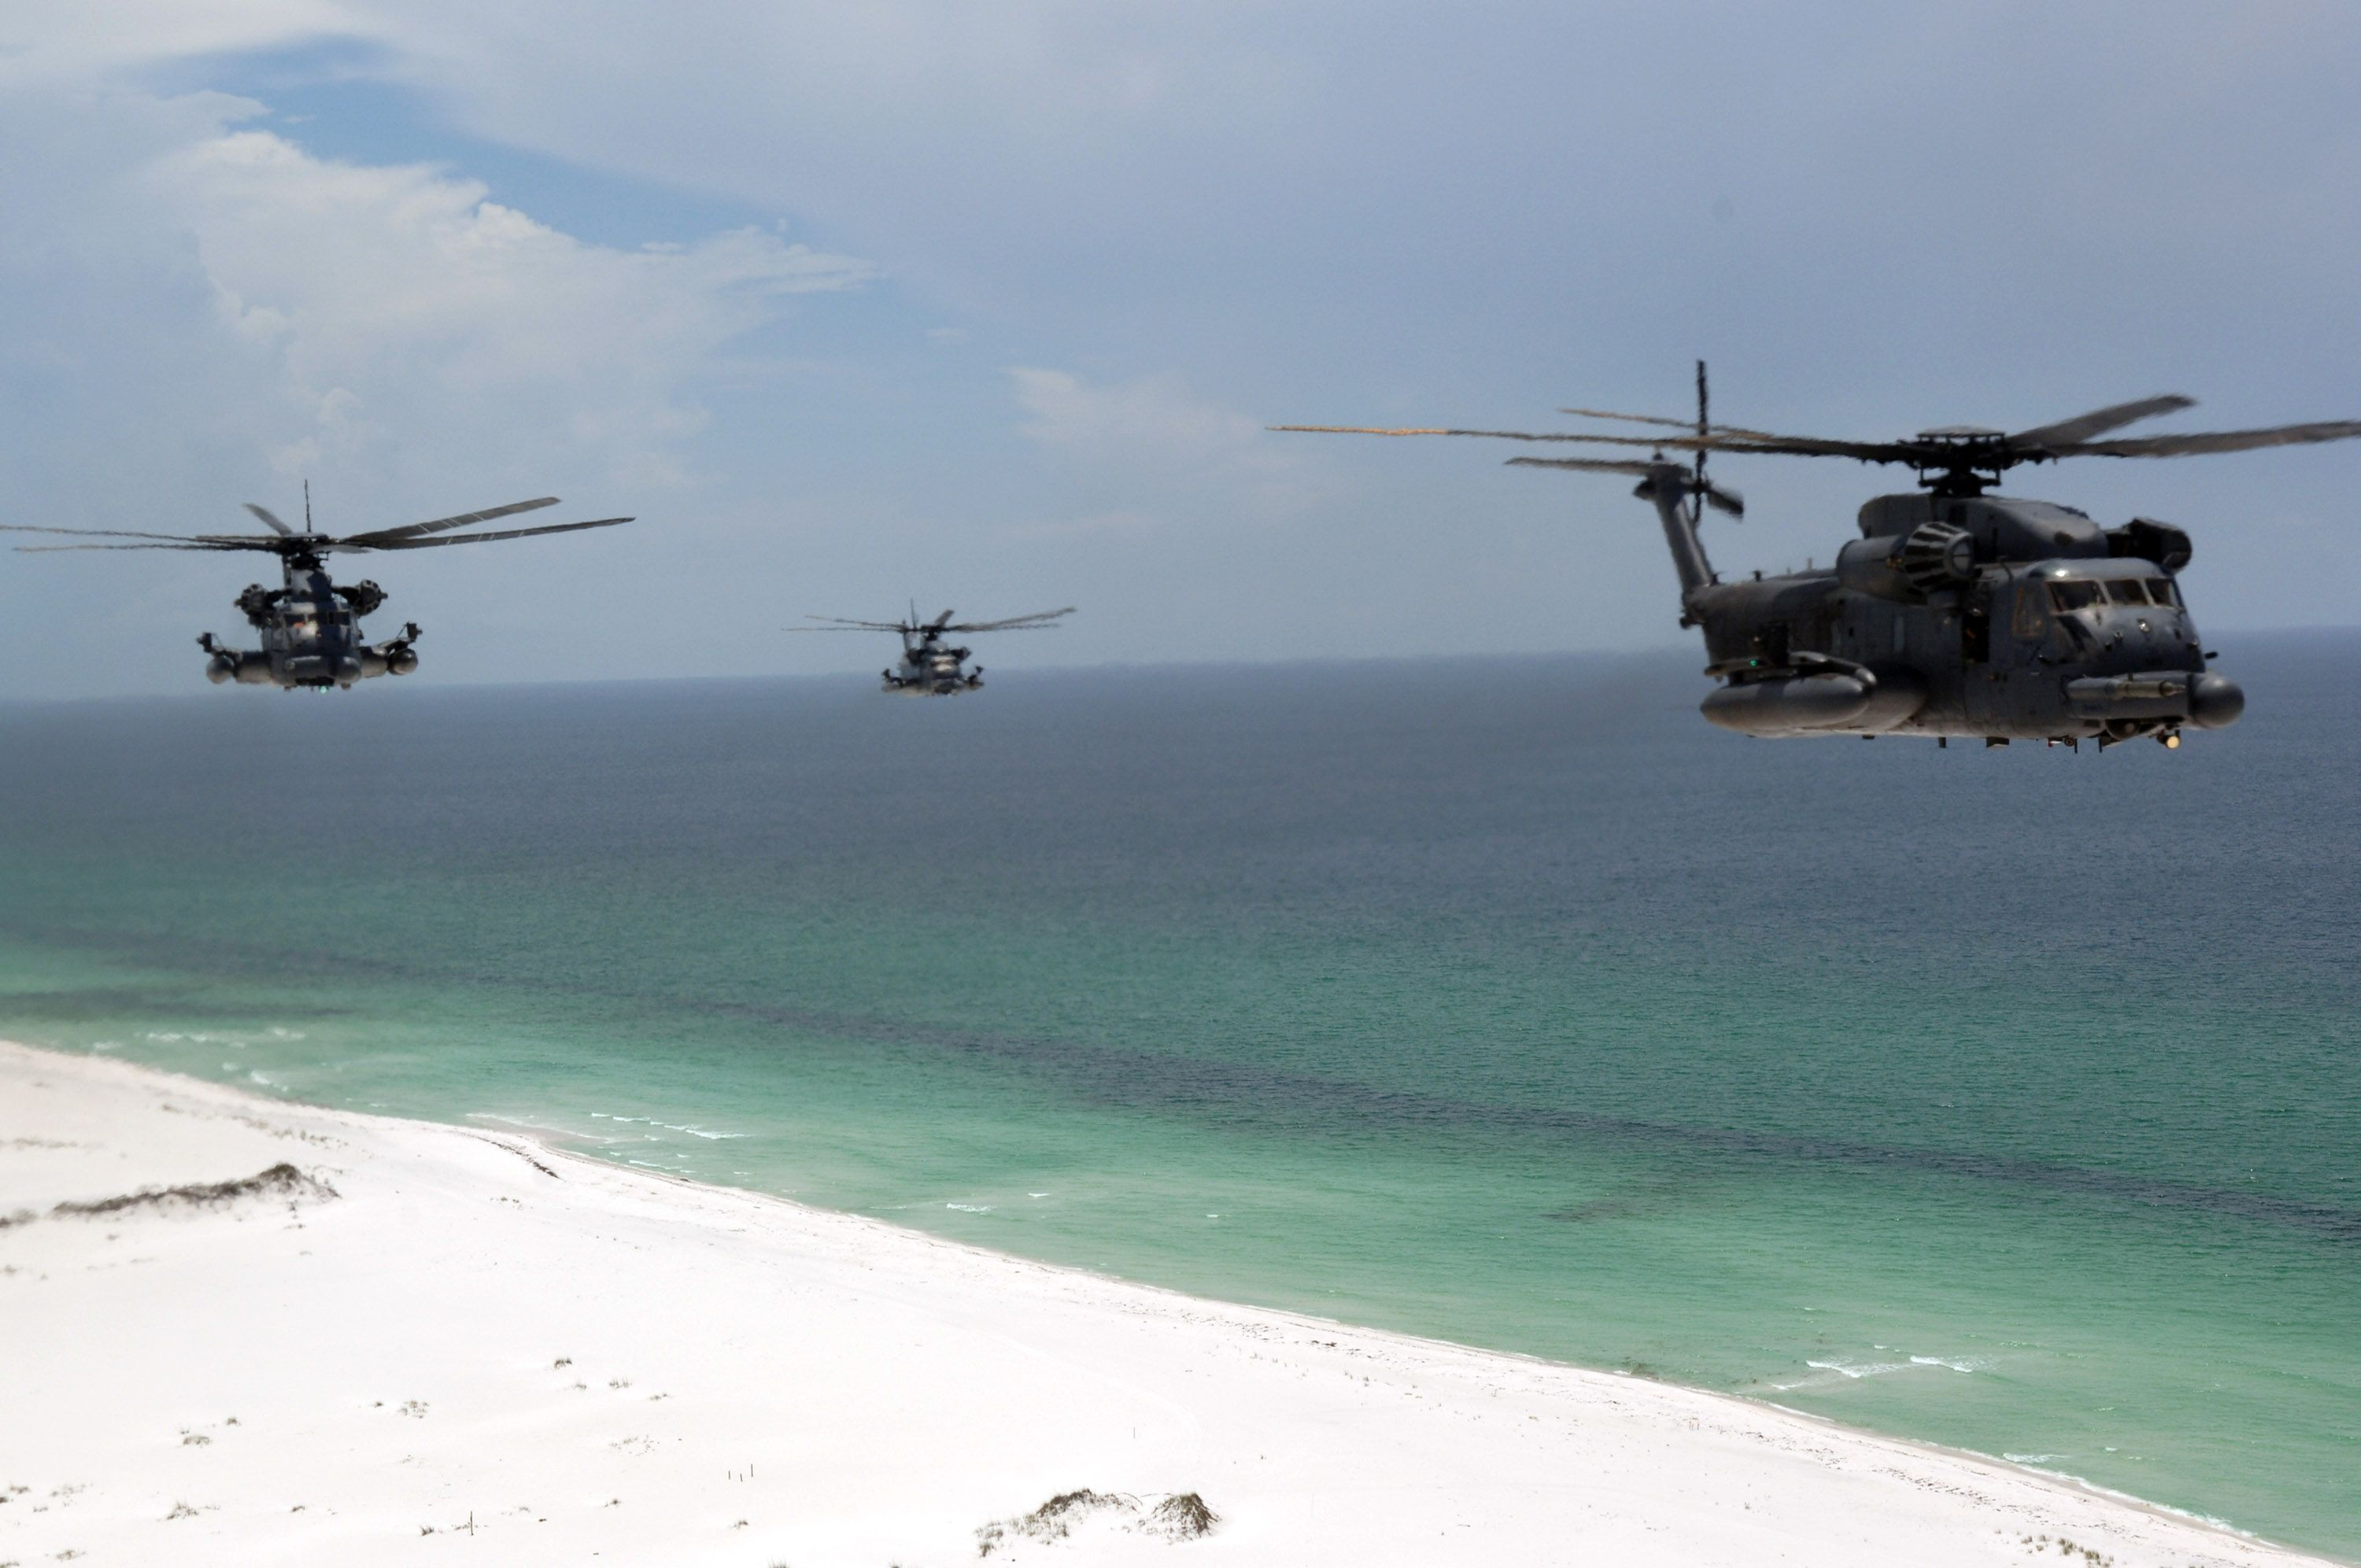 MH53 Pave Low helicopters from the 20th Special